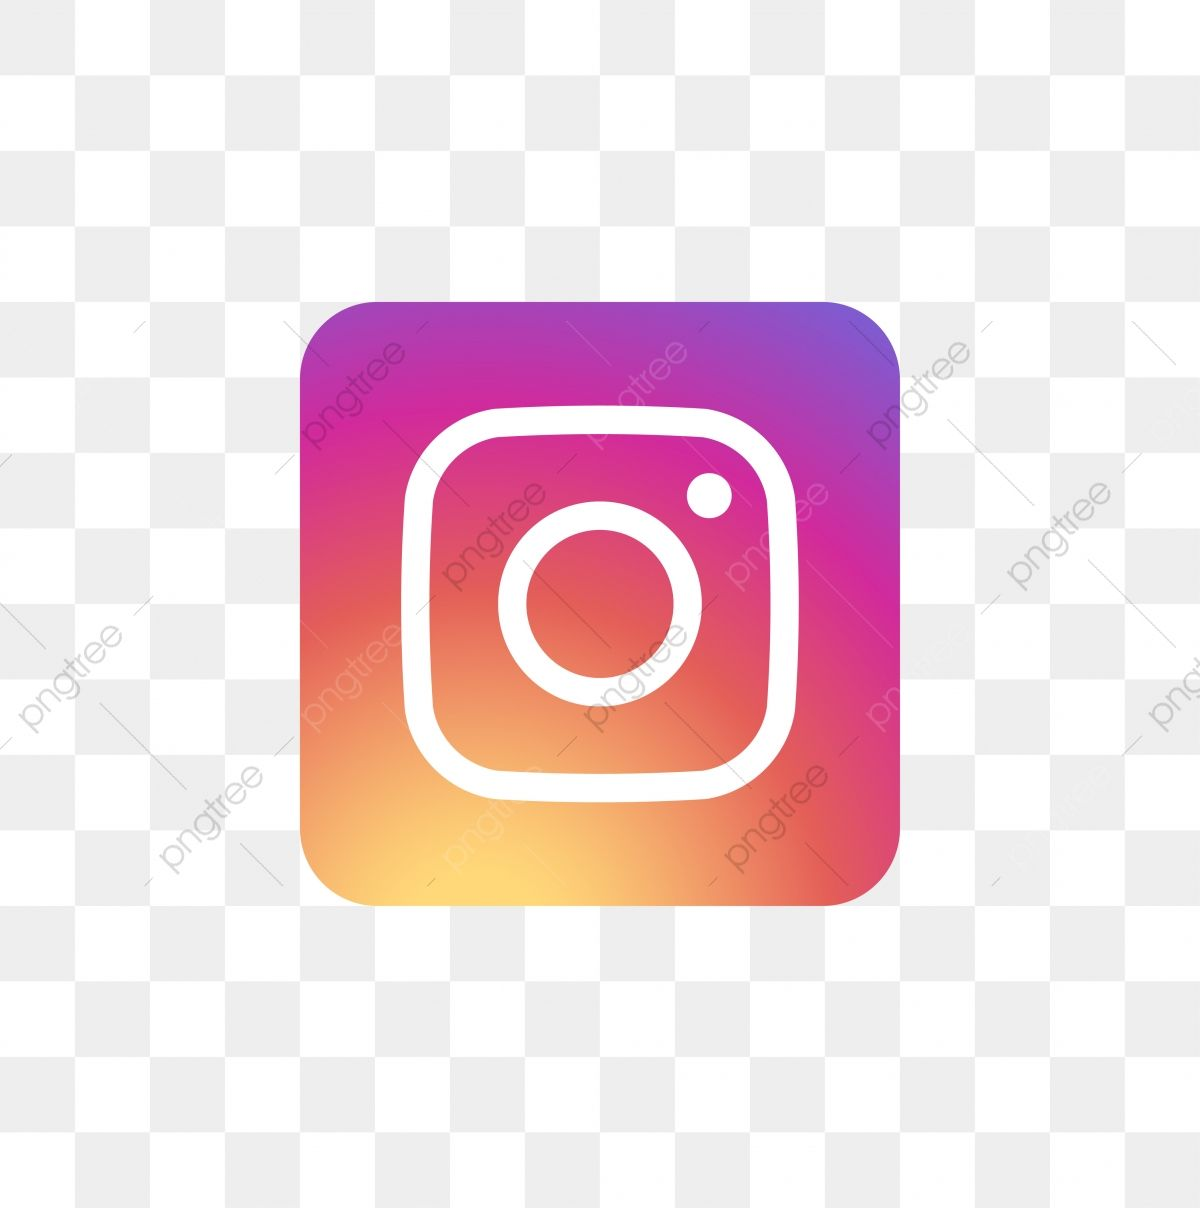 Instagram Social Media Icon Design Template Vector, Icon